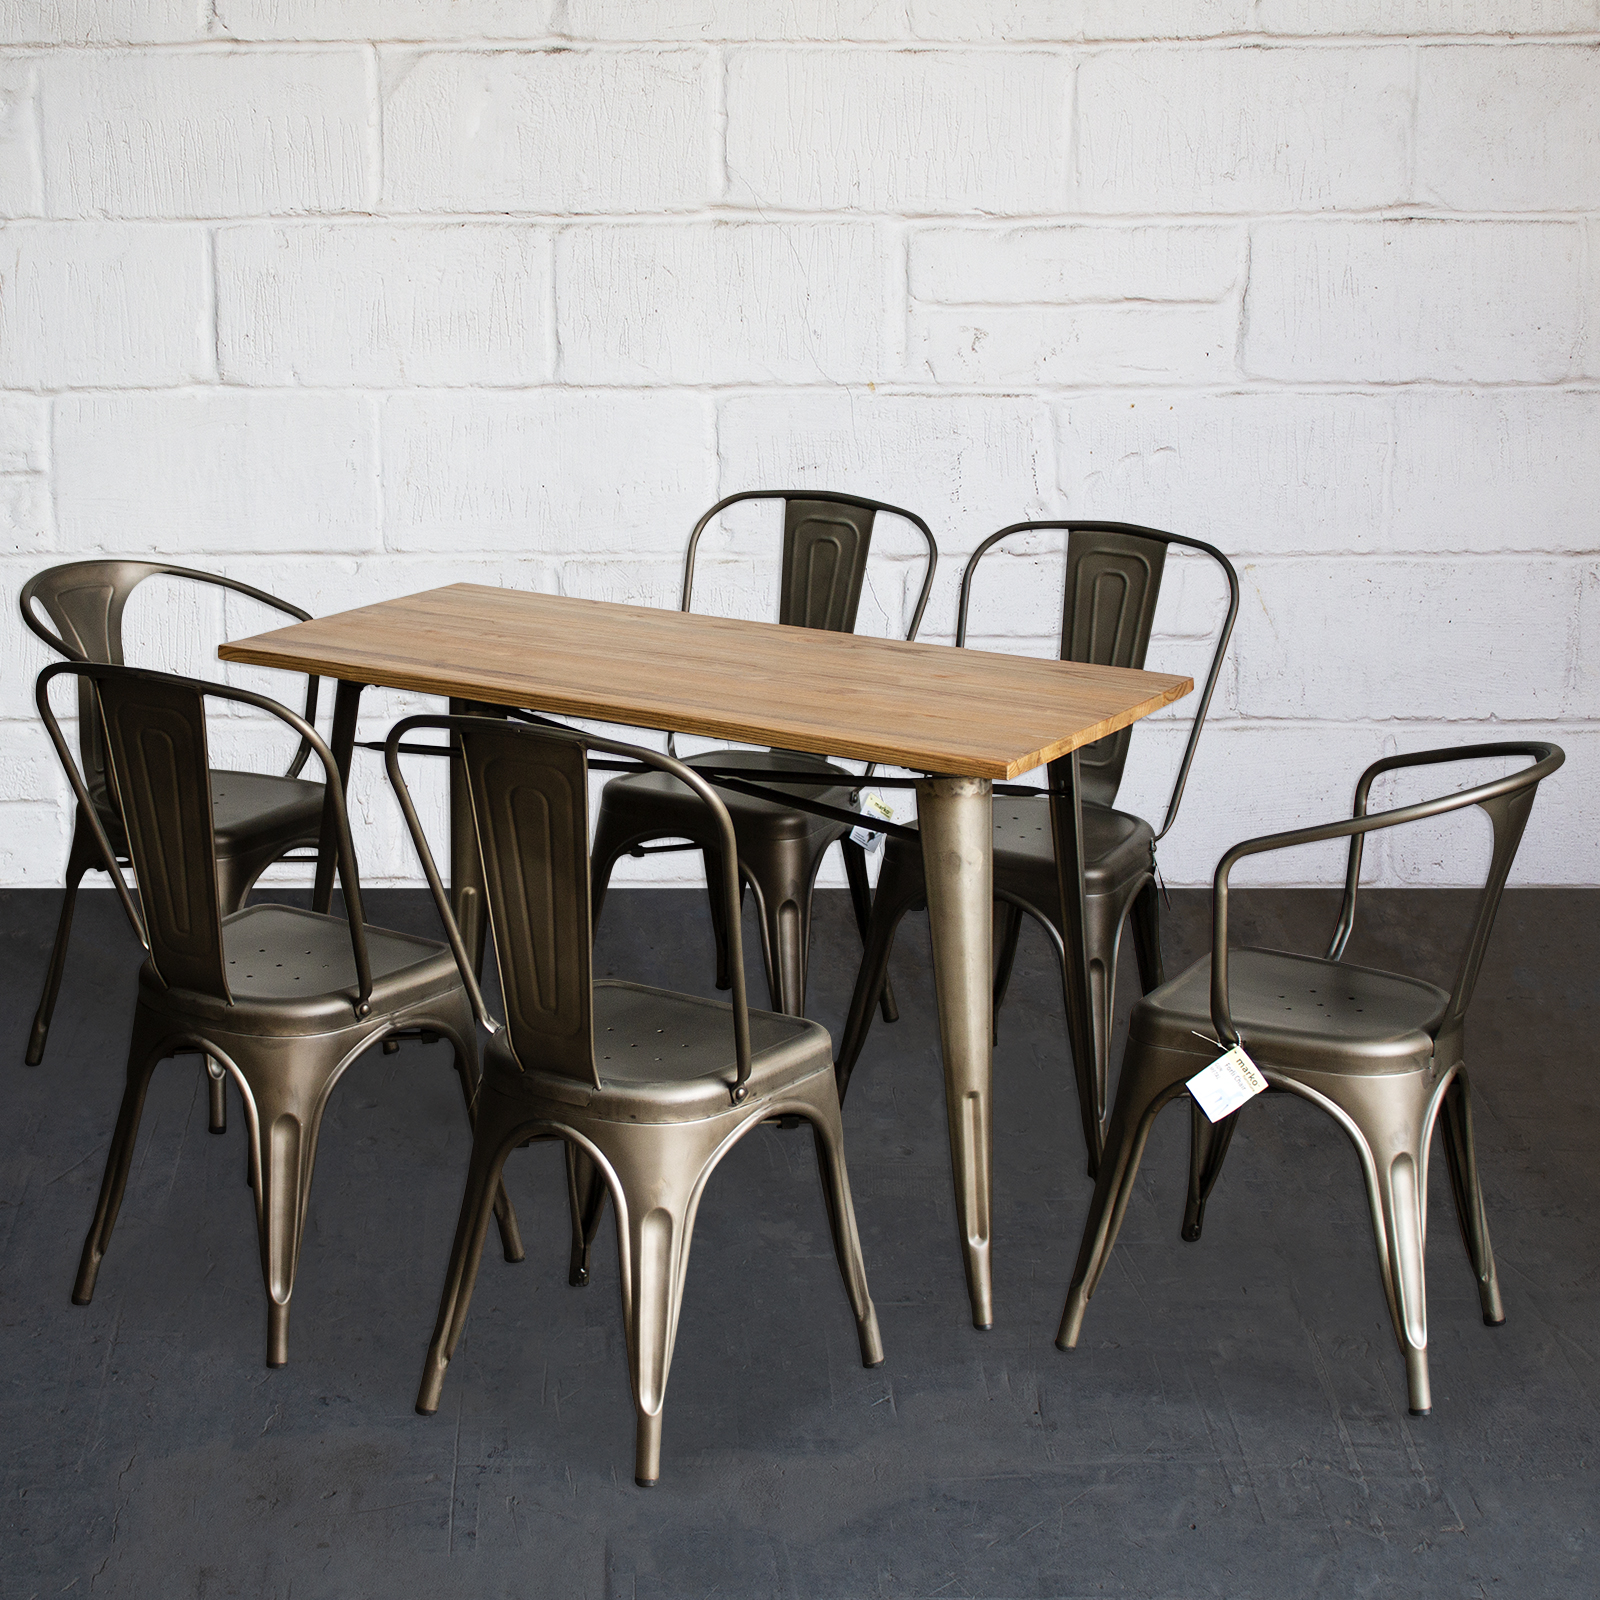 Details About Tolix Style Dining Sets Rectangular Table Chairs Gun Metal Grey Pub Restaurant